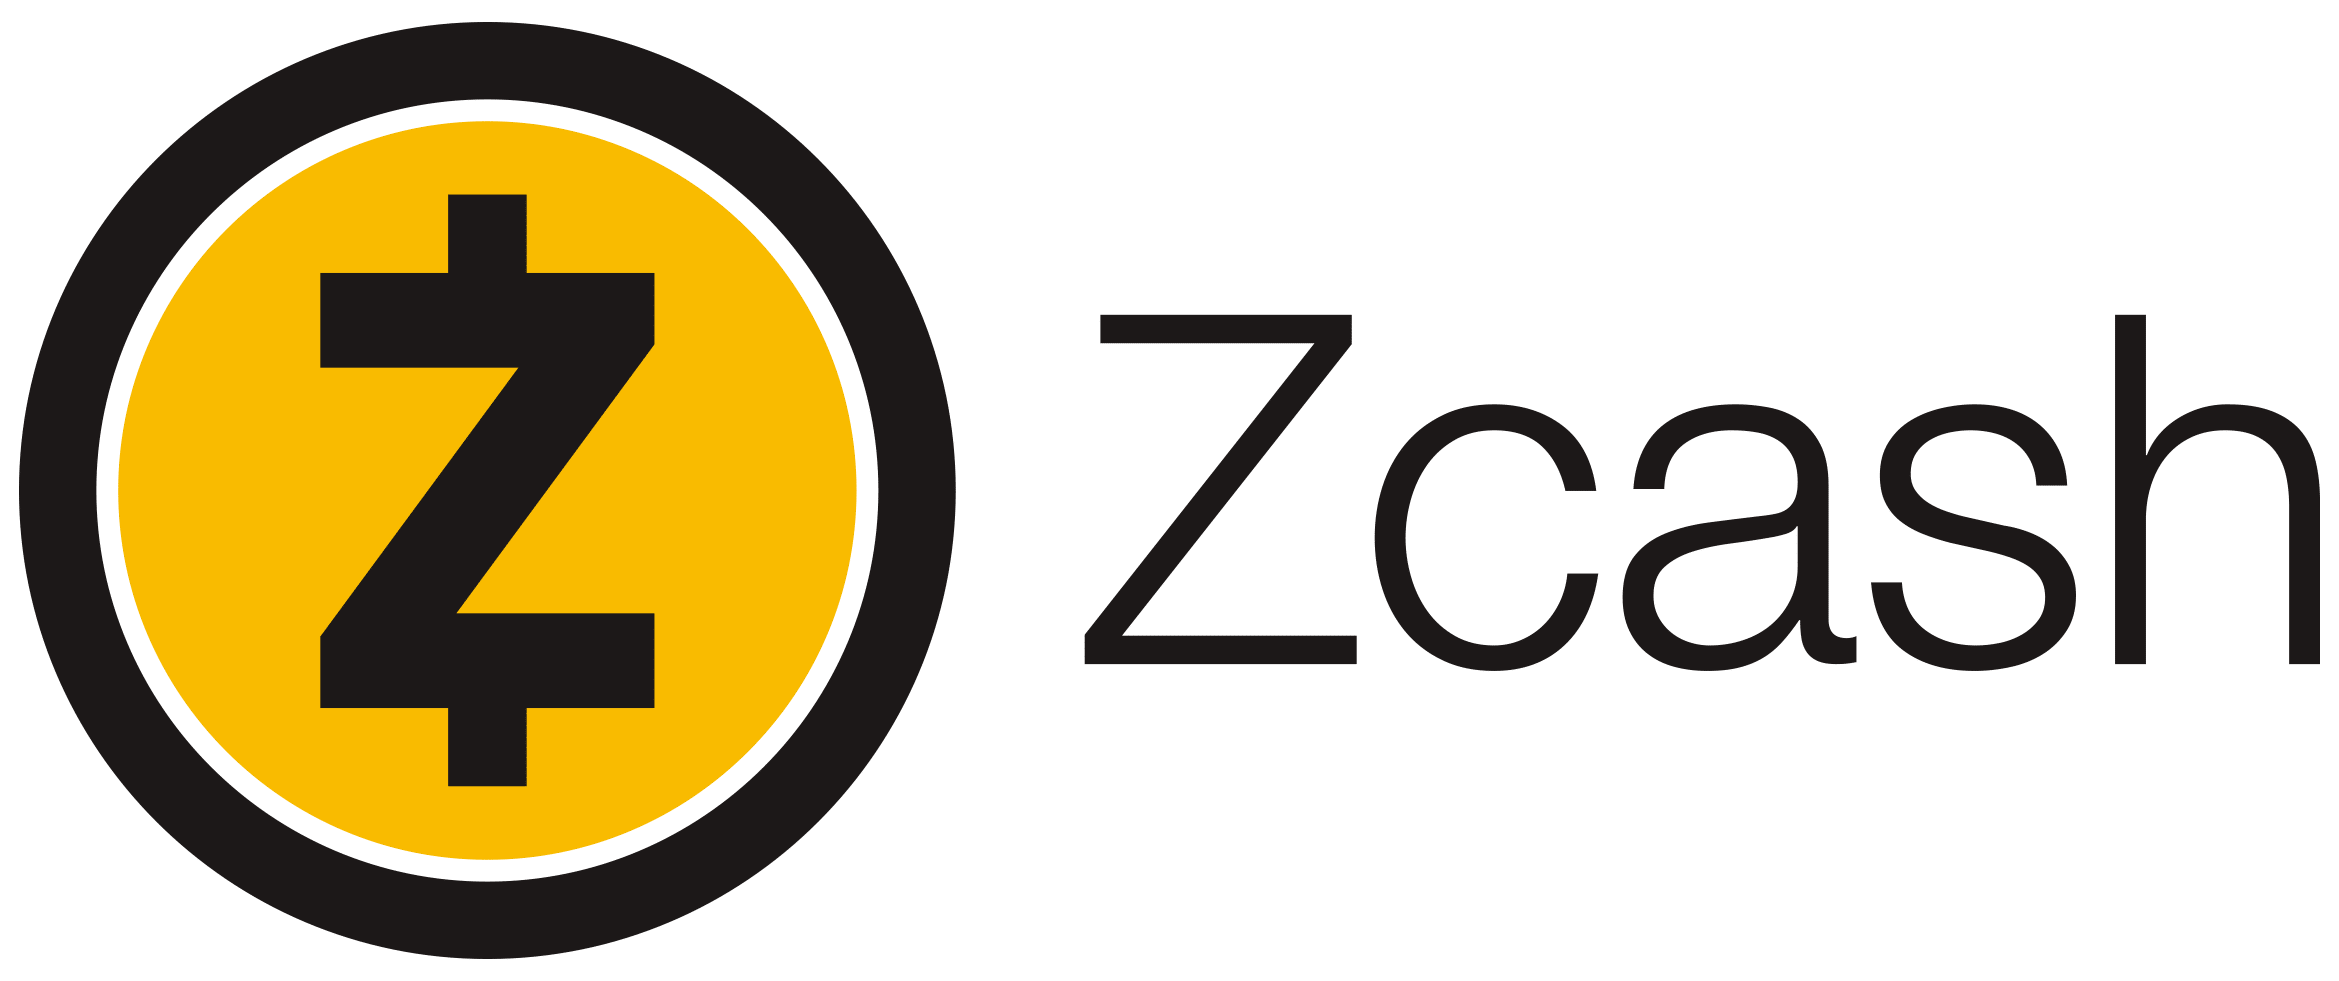 Full color horizontal Zcash logo